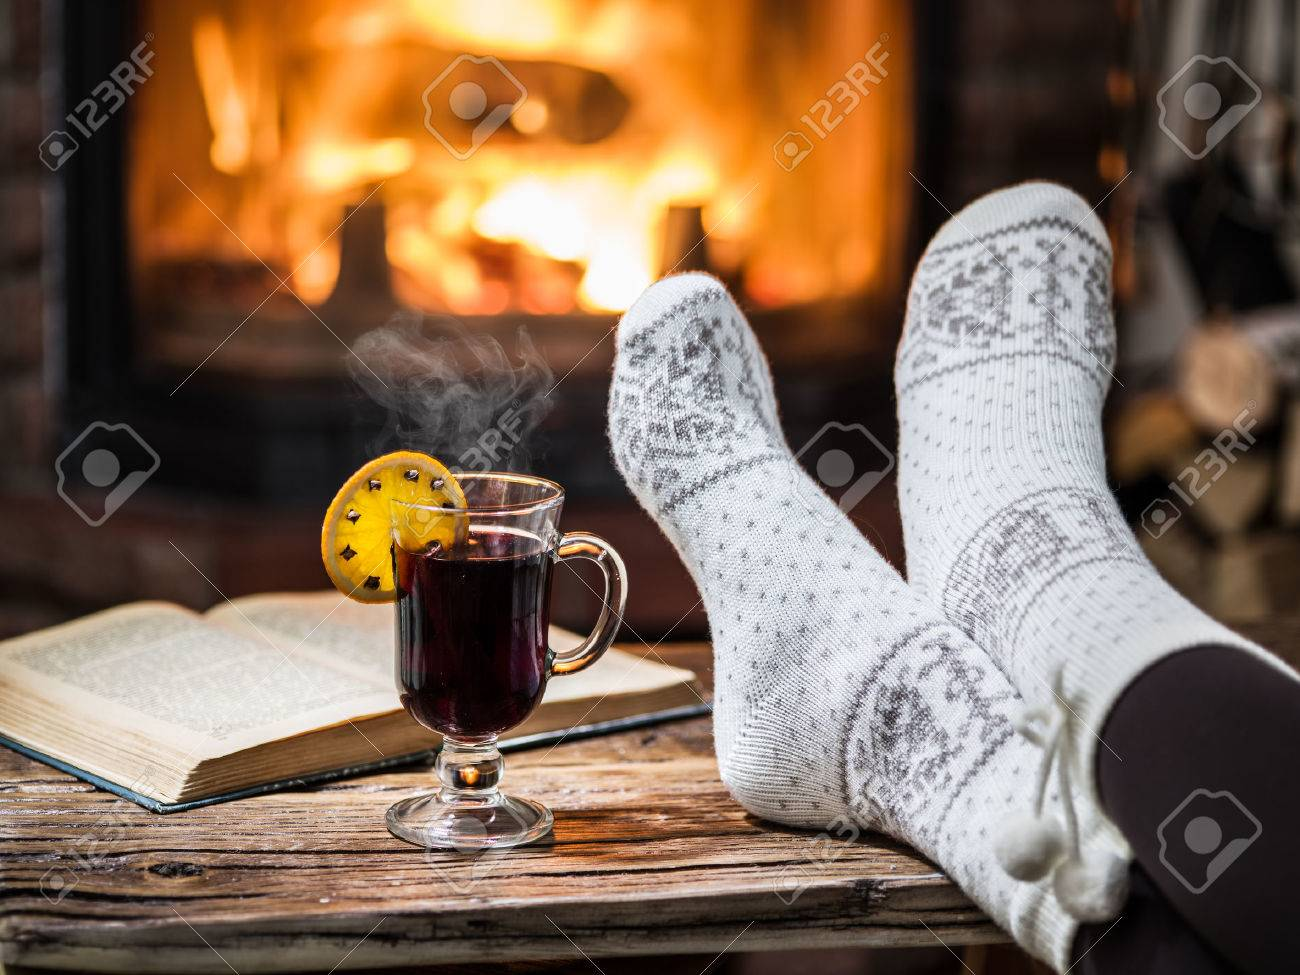 Warming and relaxing near fireplace. Woman feet near the cup of hot wine in front of fire. - 63146140